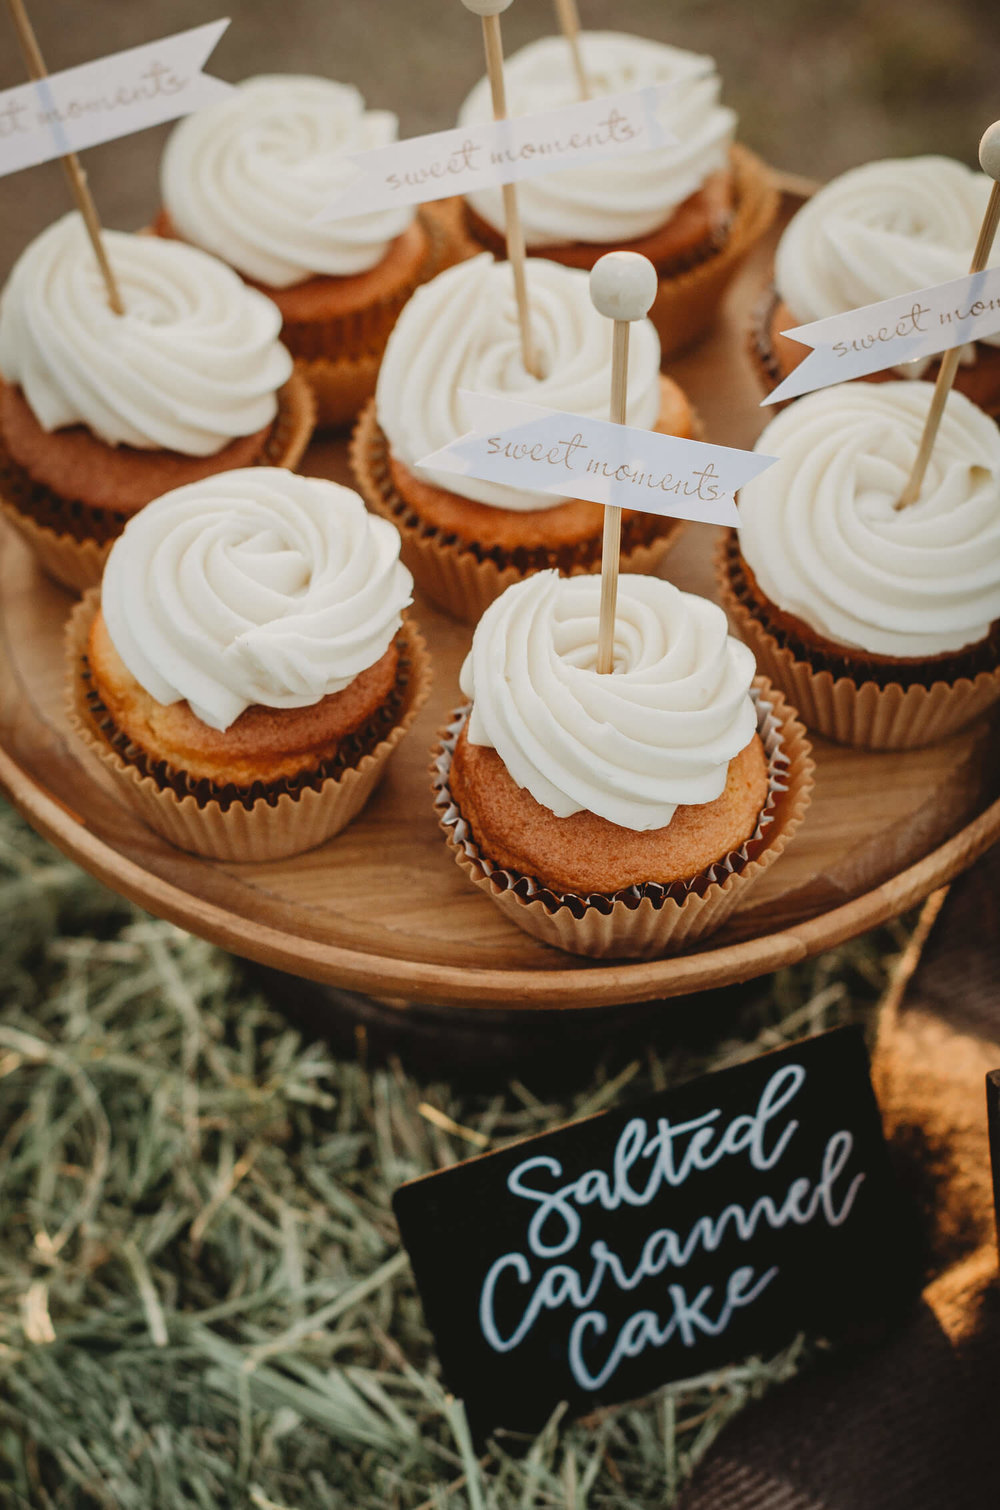 "Salted Caramel Cupcakes for a Rustic Fall bridal shower. Each cupcake is topped with a topper that reads ""sweet moments"". Click to see many more bridal shower ideas from this Fall in Love party theme. Created by party stylist Mint Event Design. #bridalshowers #bridalshowerideas #rusticwedding #rusticbridalshower #bridalshowerdecor #farmwedding #partyideas #fallbridalshower #bridalshowercupcake #bridaslshowerdessert"